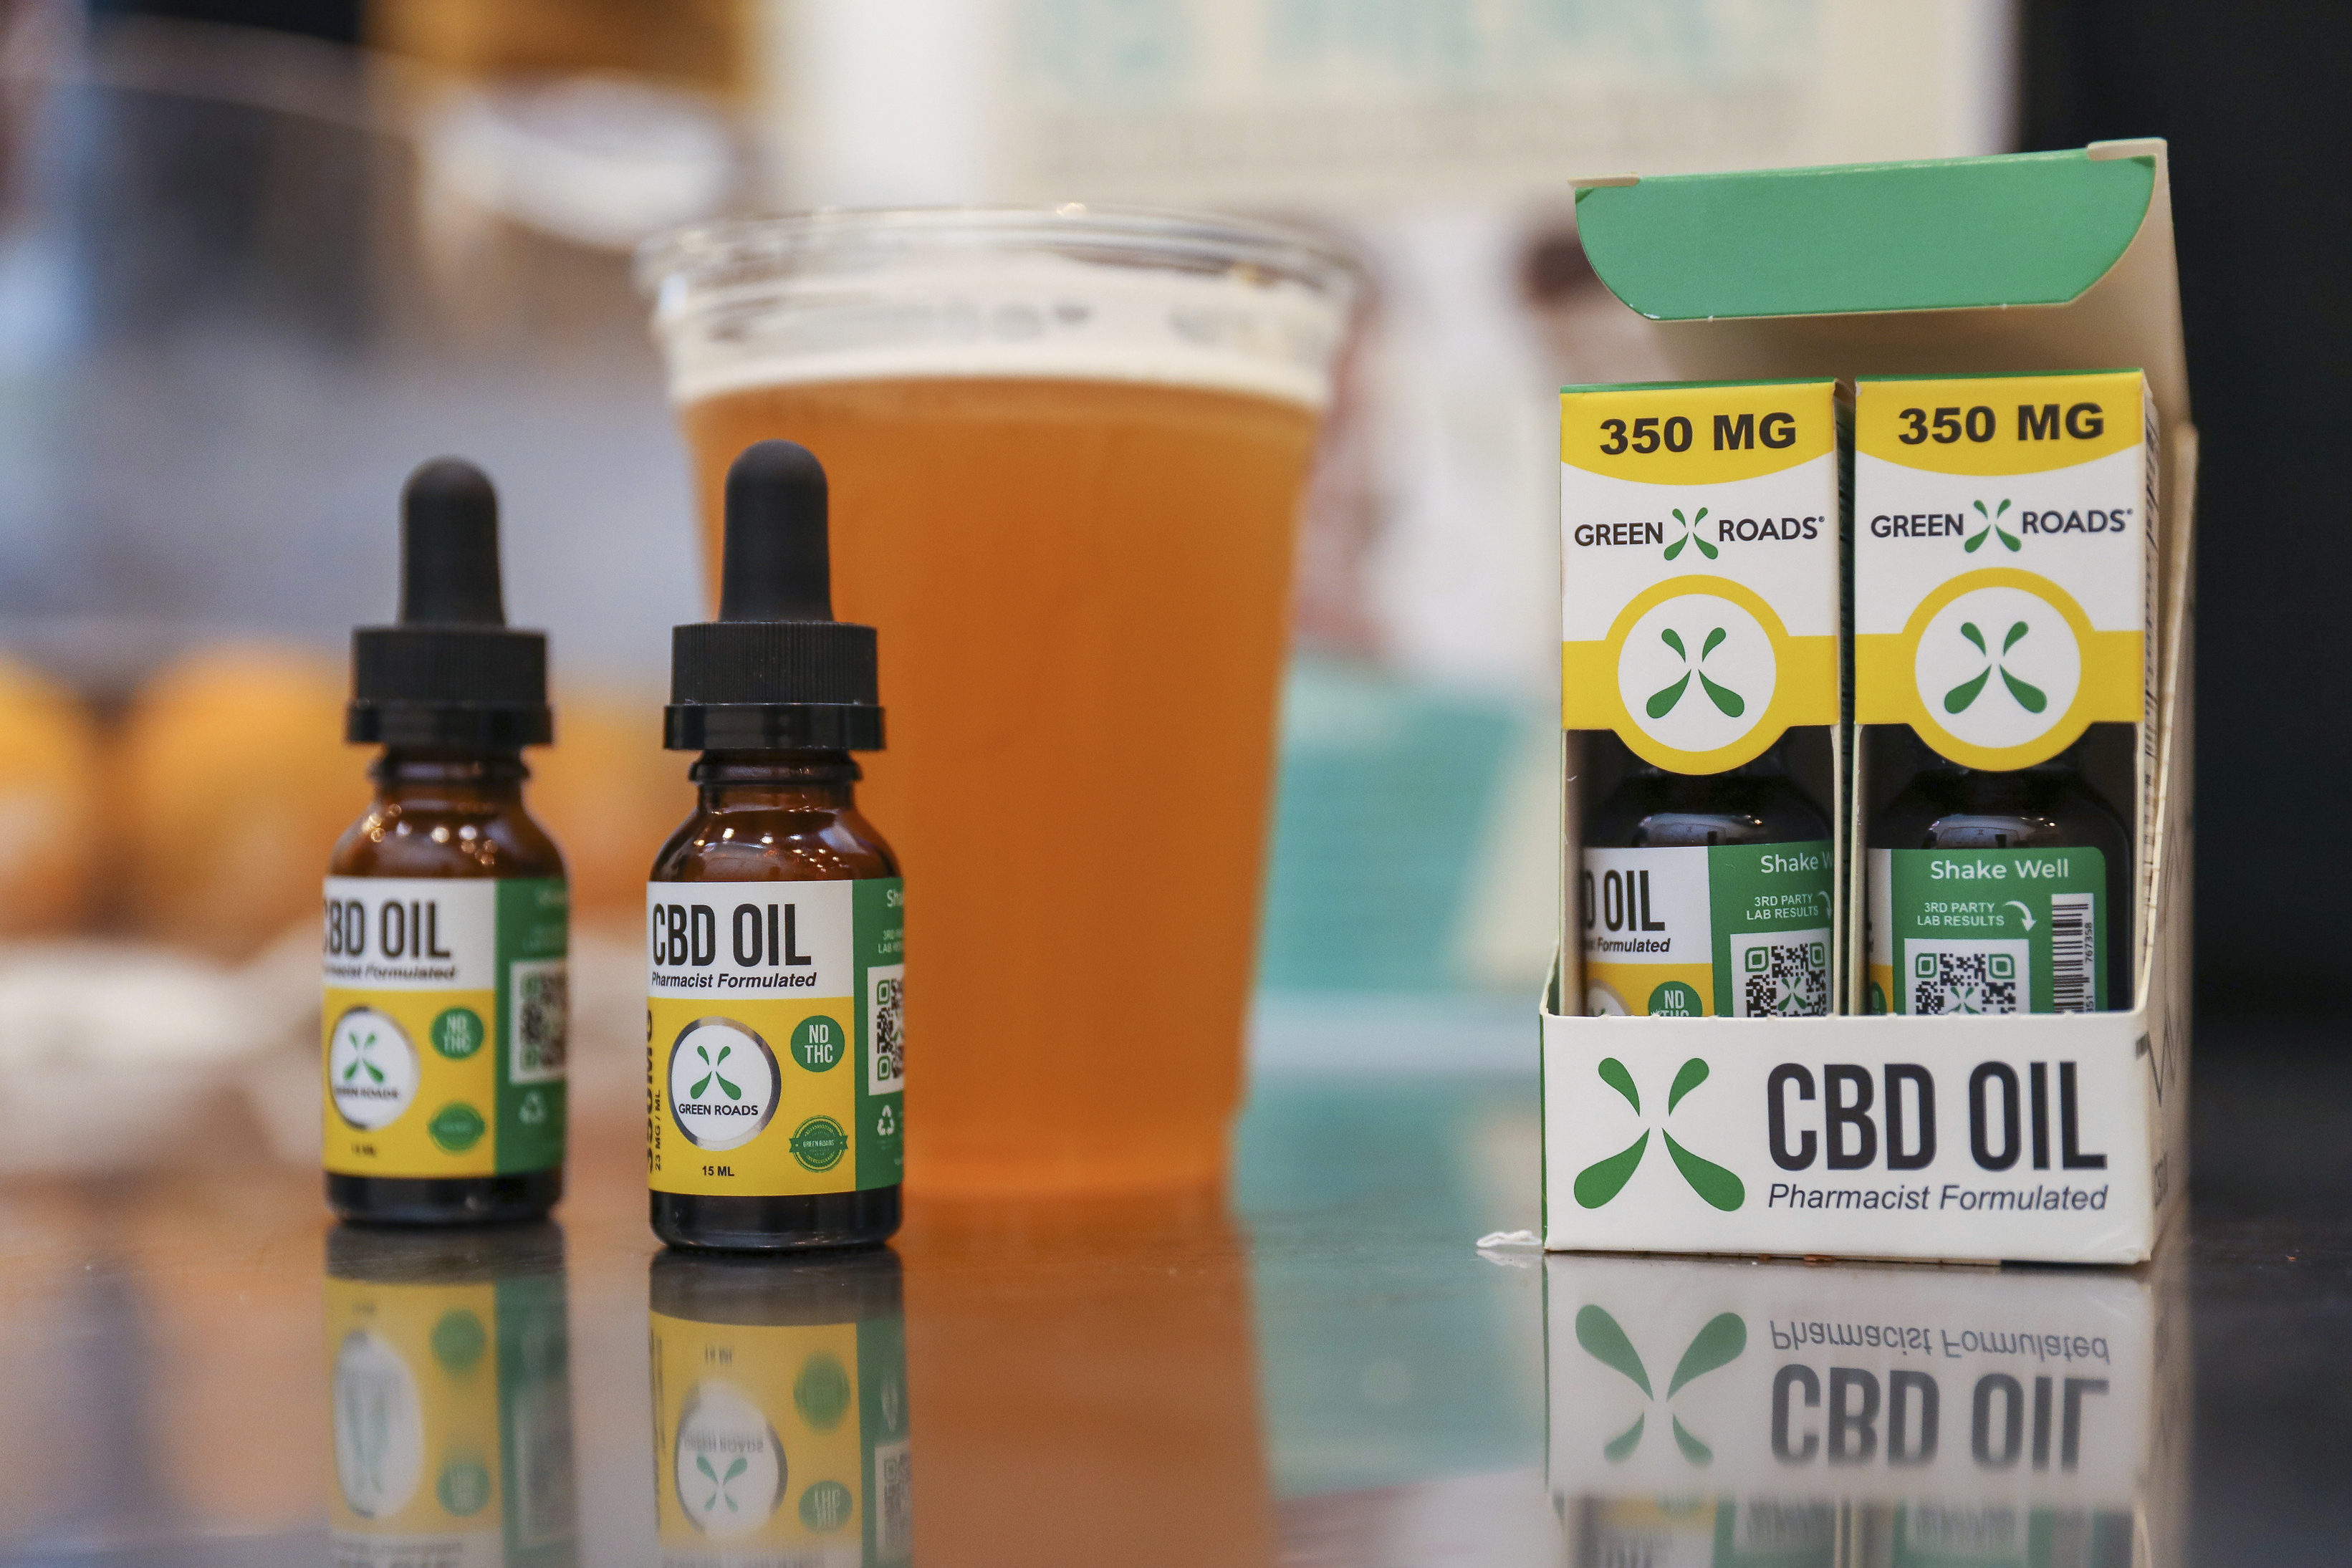 CBD and THC-A oil dispensaries set to open across Virginia